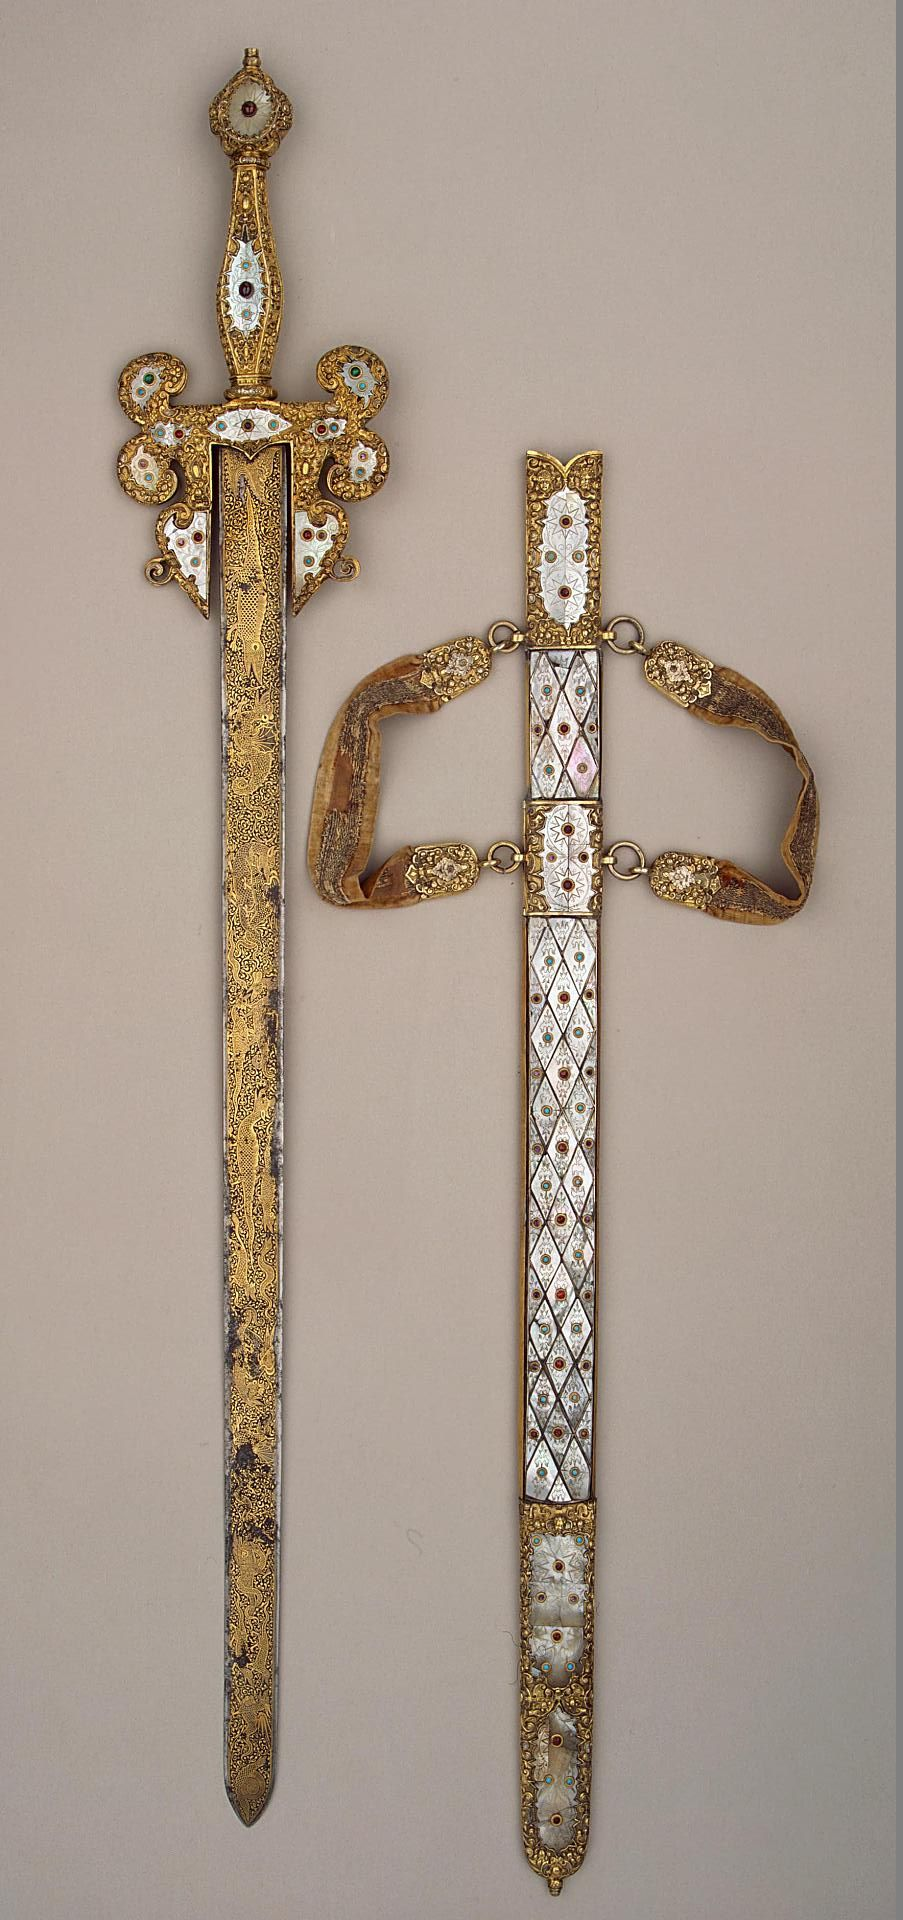 Sword Italy, Middle - second half of the 16th century Outwardly this sword - in particular the configuration of the hilt and scabbard, and of course the decoration of gilded silver, mother-of-pearl and coloured stones - would seem to have been intended for official or ceremonial use. The nature of the decoration on the blade and the technique of gold inlay on a blued ground, indicate that it may have been made in a Venetian